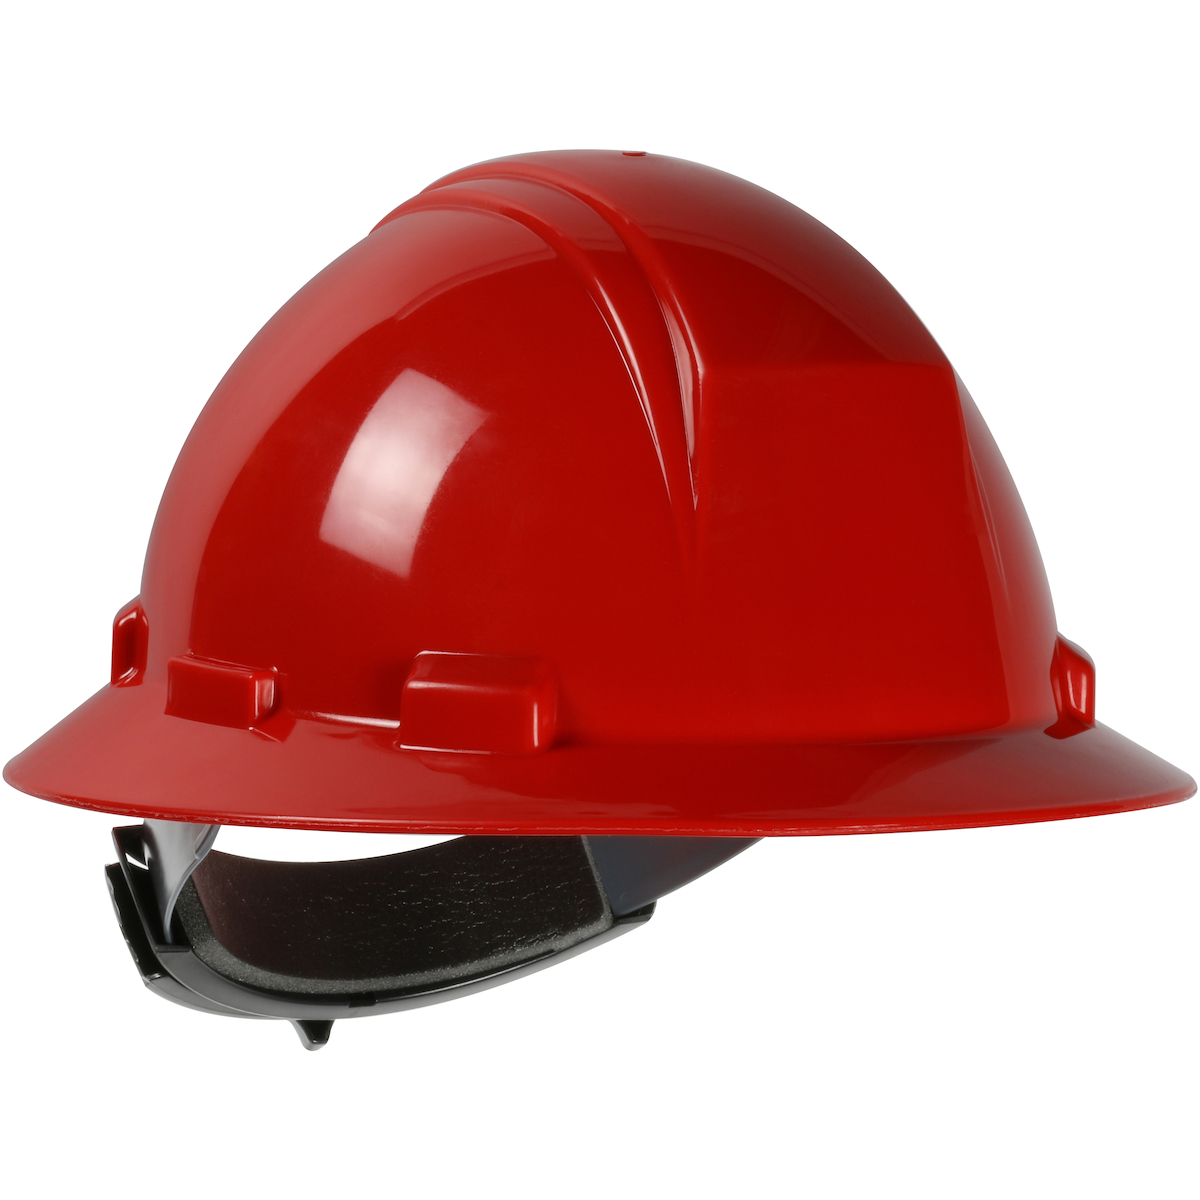 Type II Full Brim Hard Hat with HDPE Shell, 4-Point Textile Suspension and Wheel Ratchet Adjustment, Red, OS